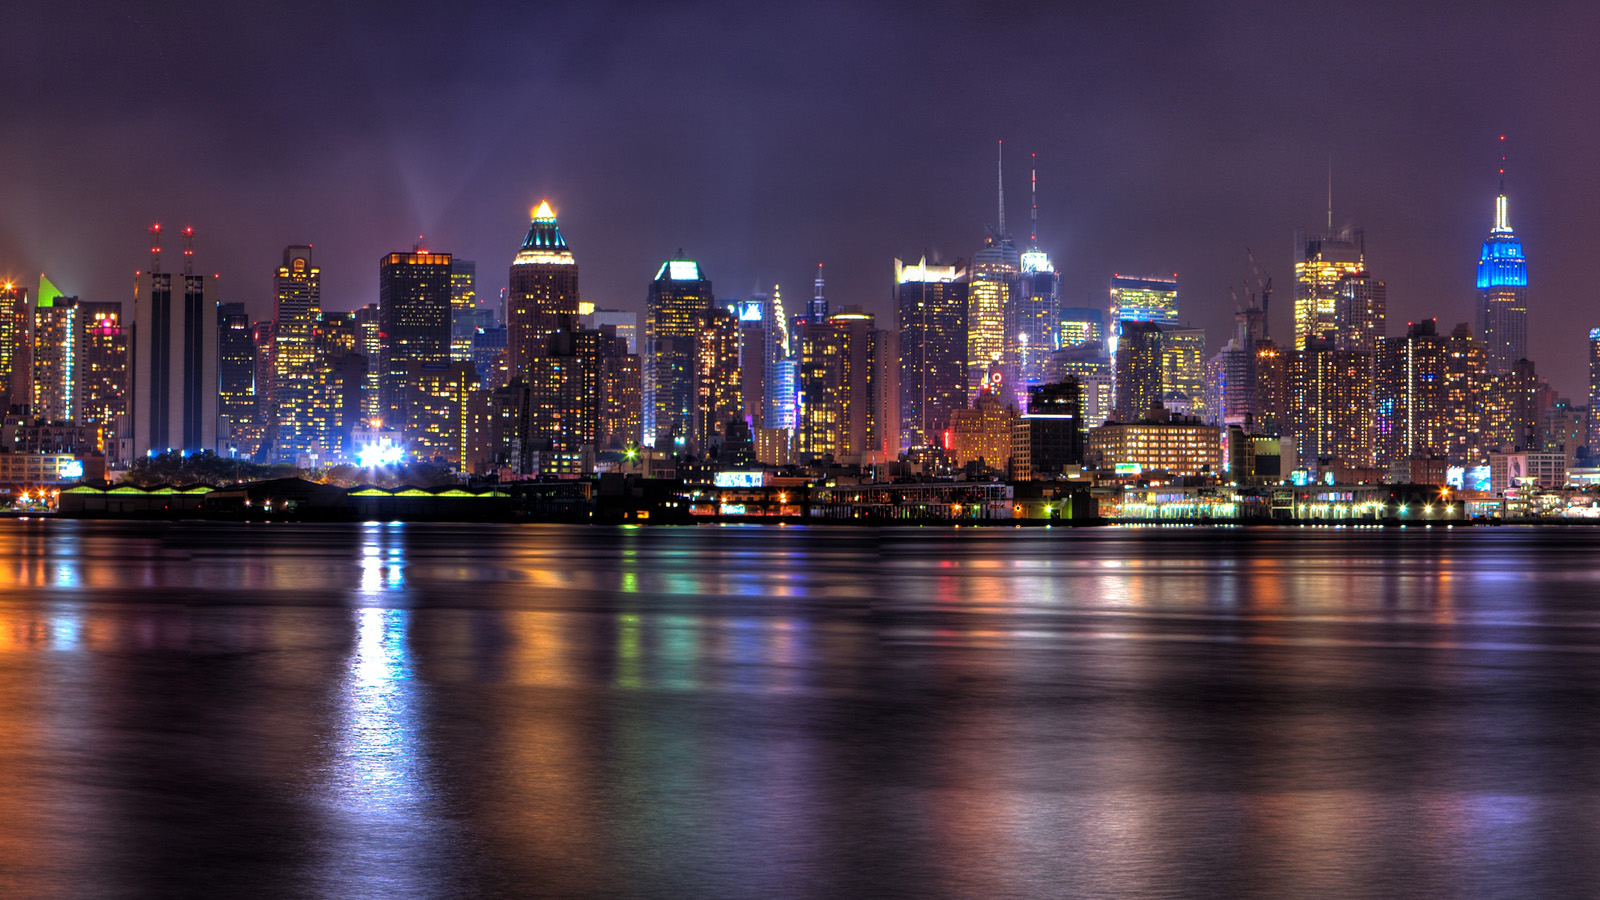 Free Download New York City Skyline At Night Wallpaper 1600x900